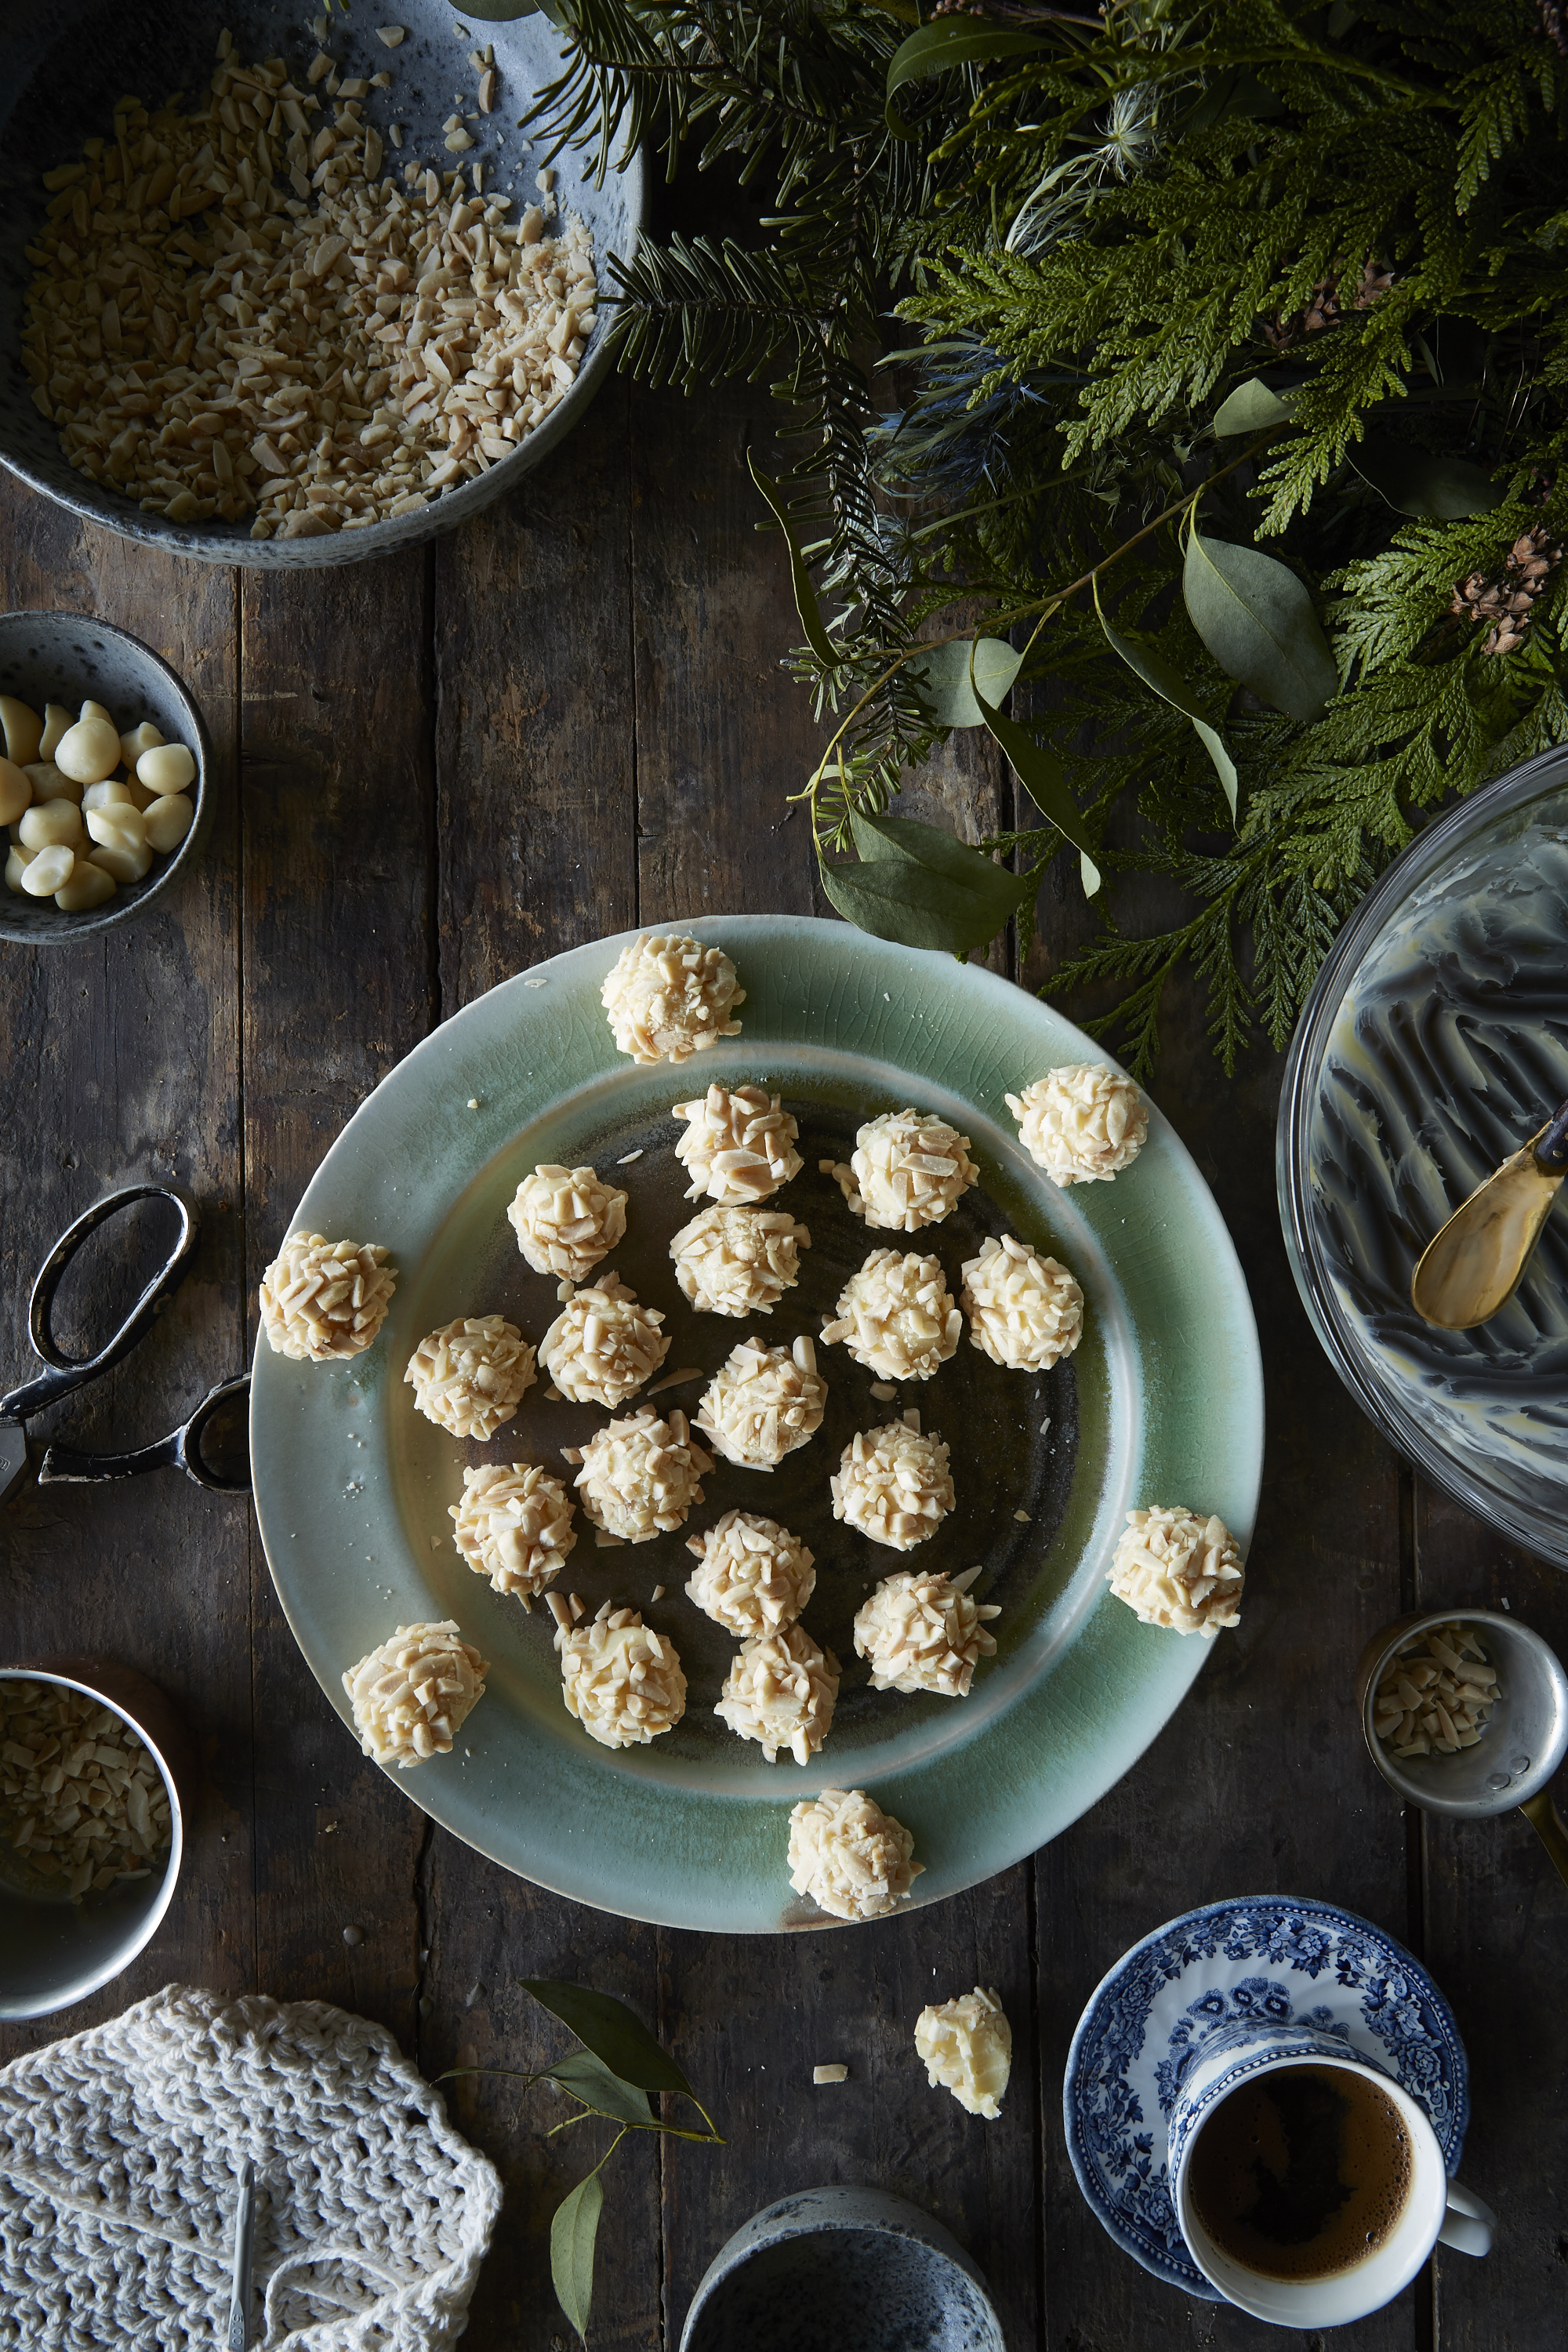 lidl-white-chocolate-truffles-lidl-white-chocolate-truffles-recipe0141